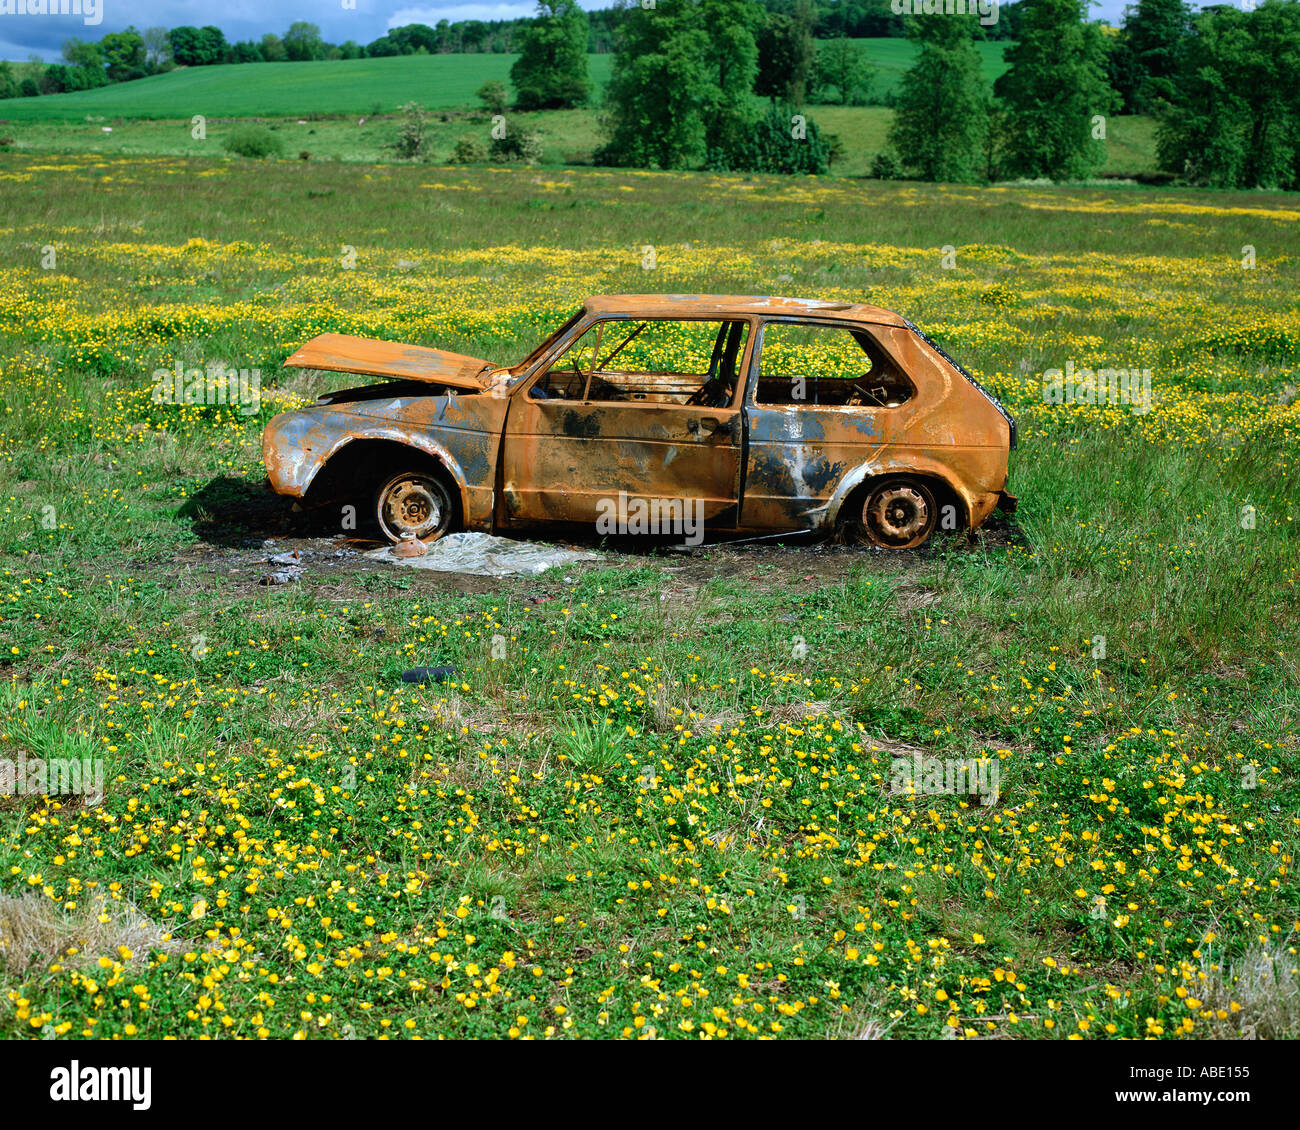 Abandoned car in a field - Stock Image